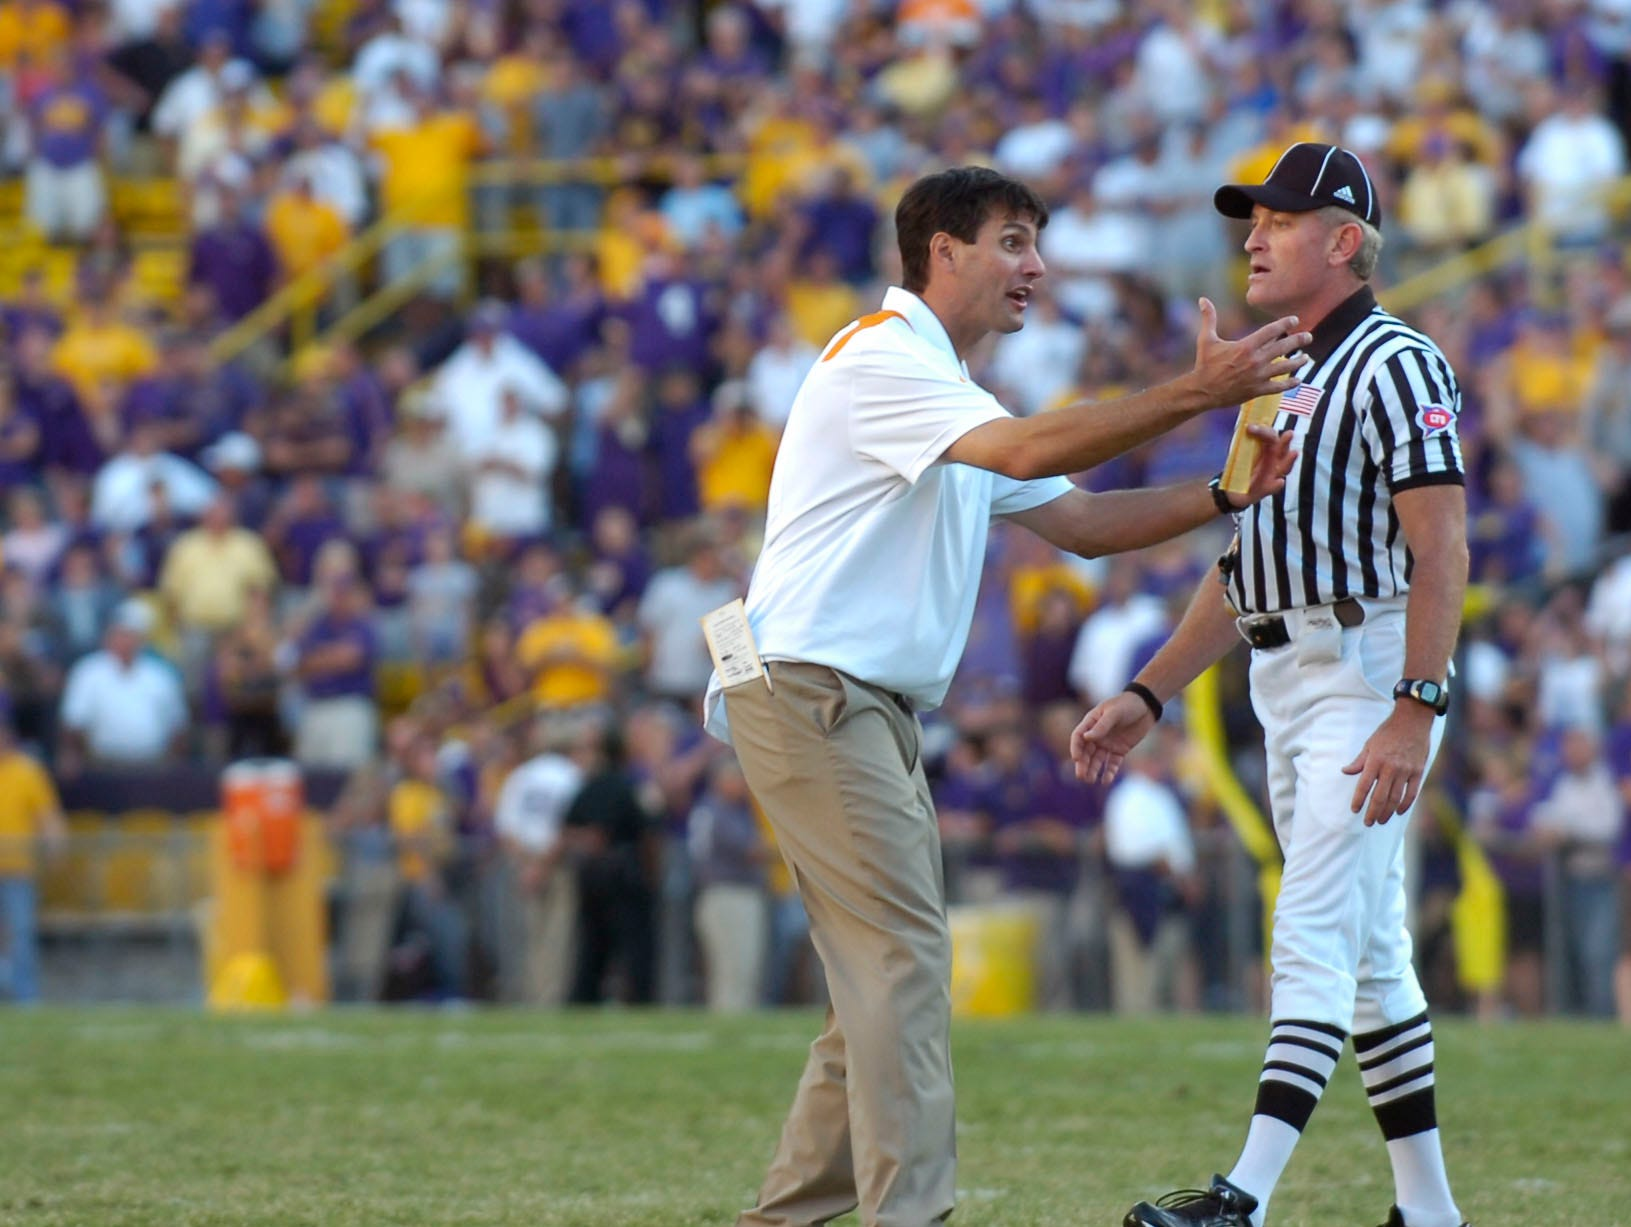 Tennesse head coach Derek Dooley reacts to the penalty against his team at Tiger Stadium in Baton Rouge, La. on Saturday, Oct. 2, 2010. UT lost the game 16-14 after a defensive penalty in the final play of the game.